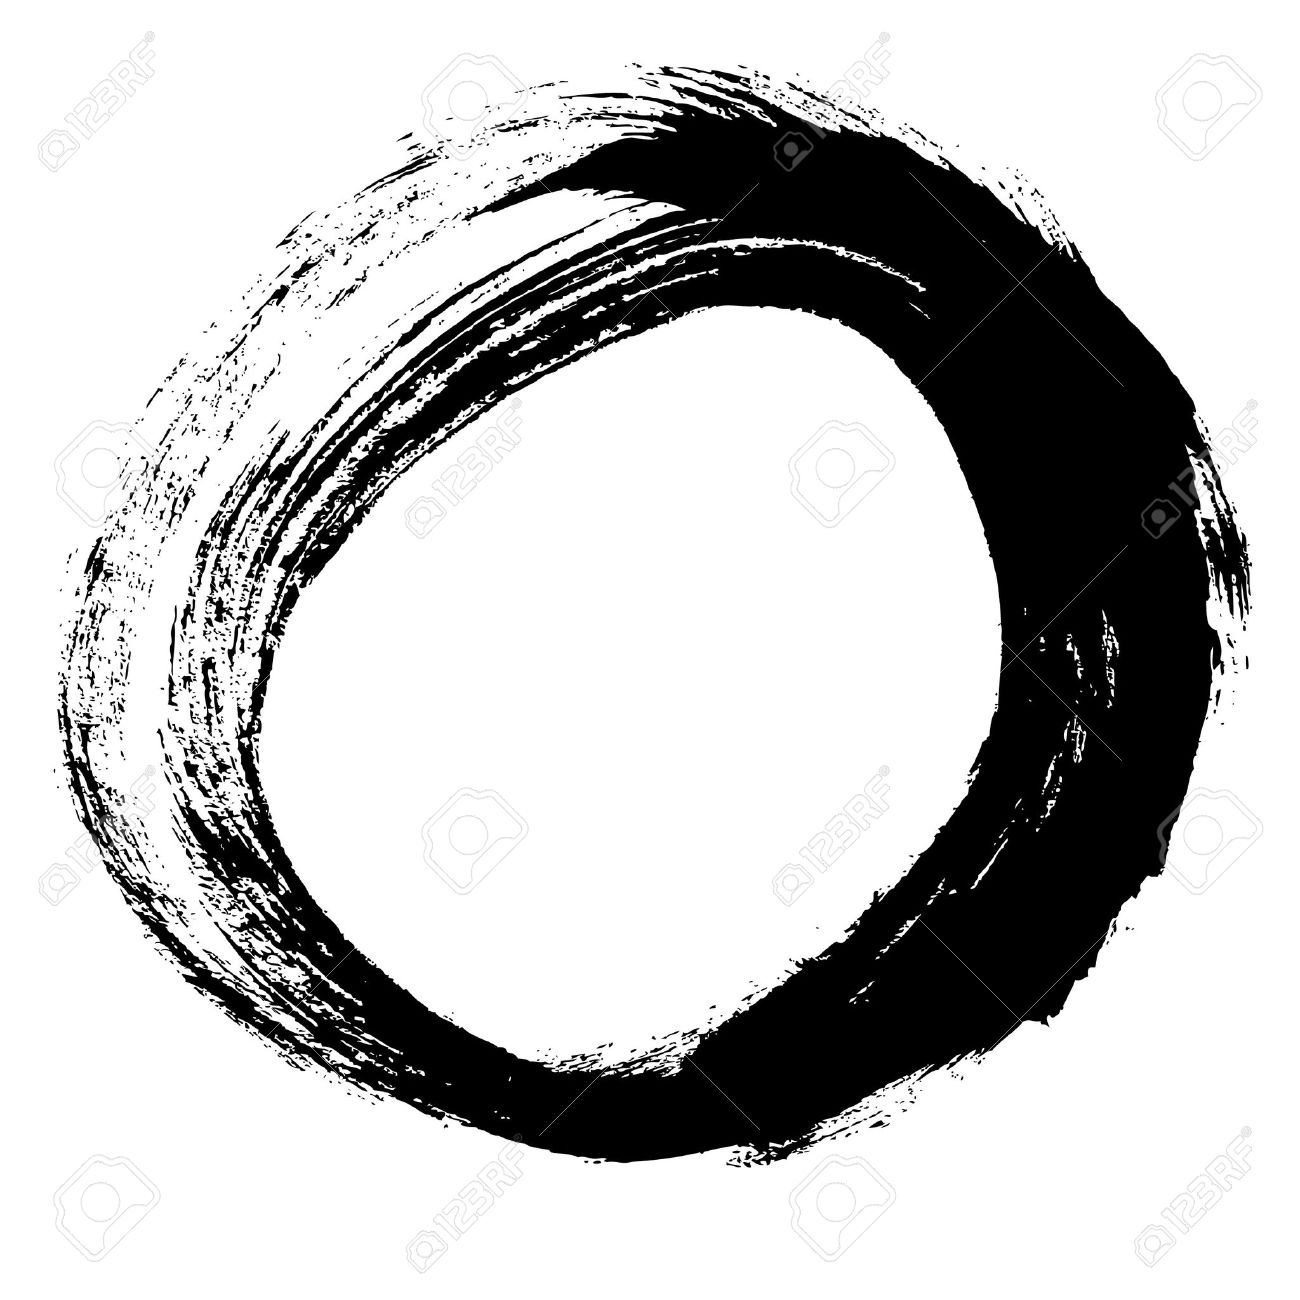 Black Brush Stroke In The Form Of A Circle Drawing Created In ...